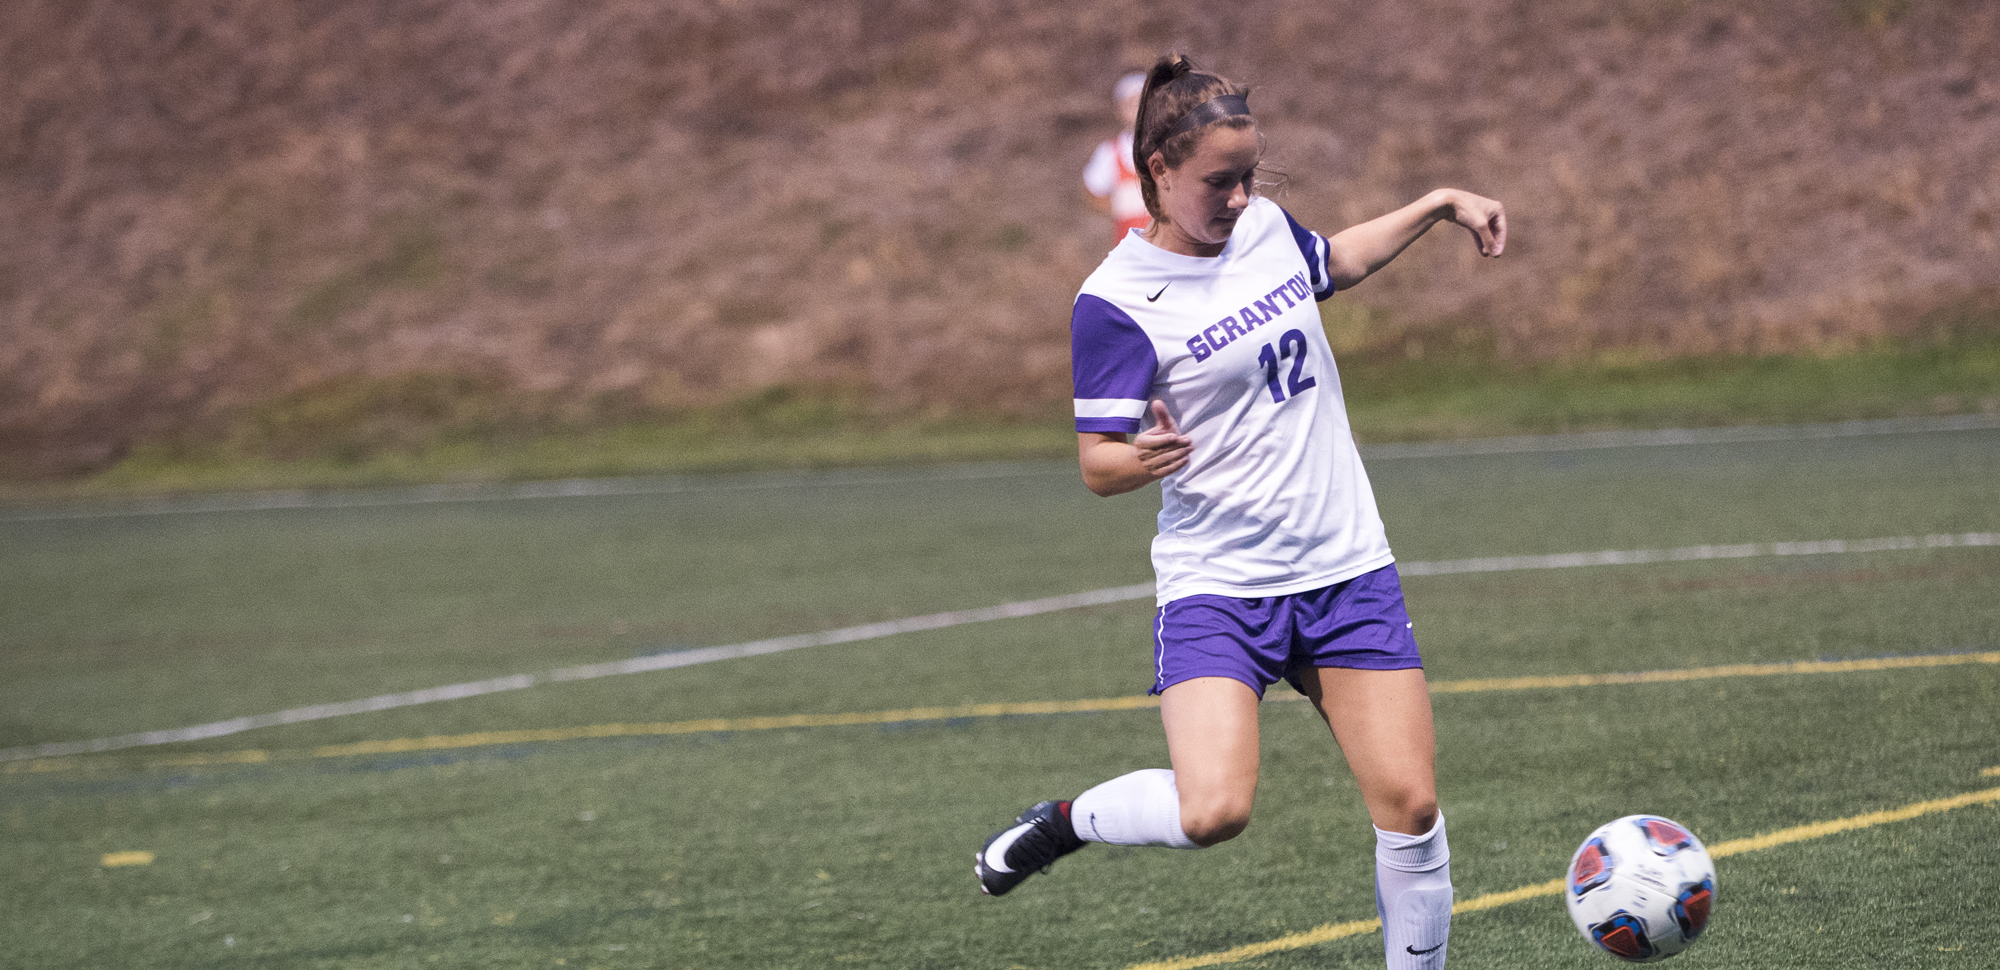 Junior midfielder Brittany Uricchio scored twice in the Royals' 6-0 win at Goucher on Saturday.